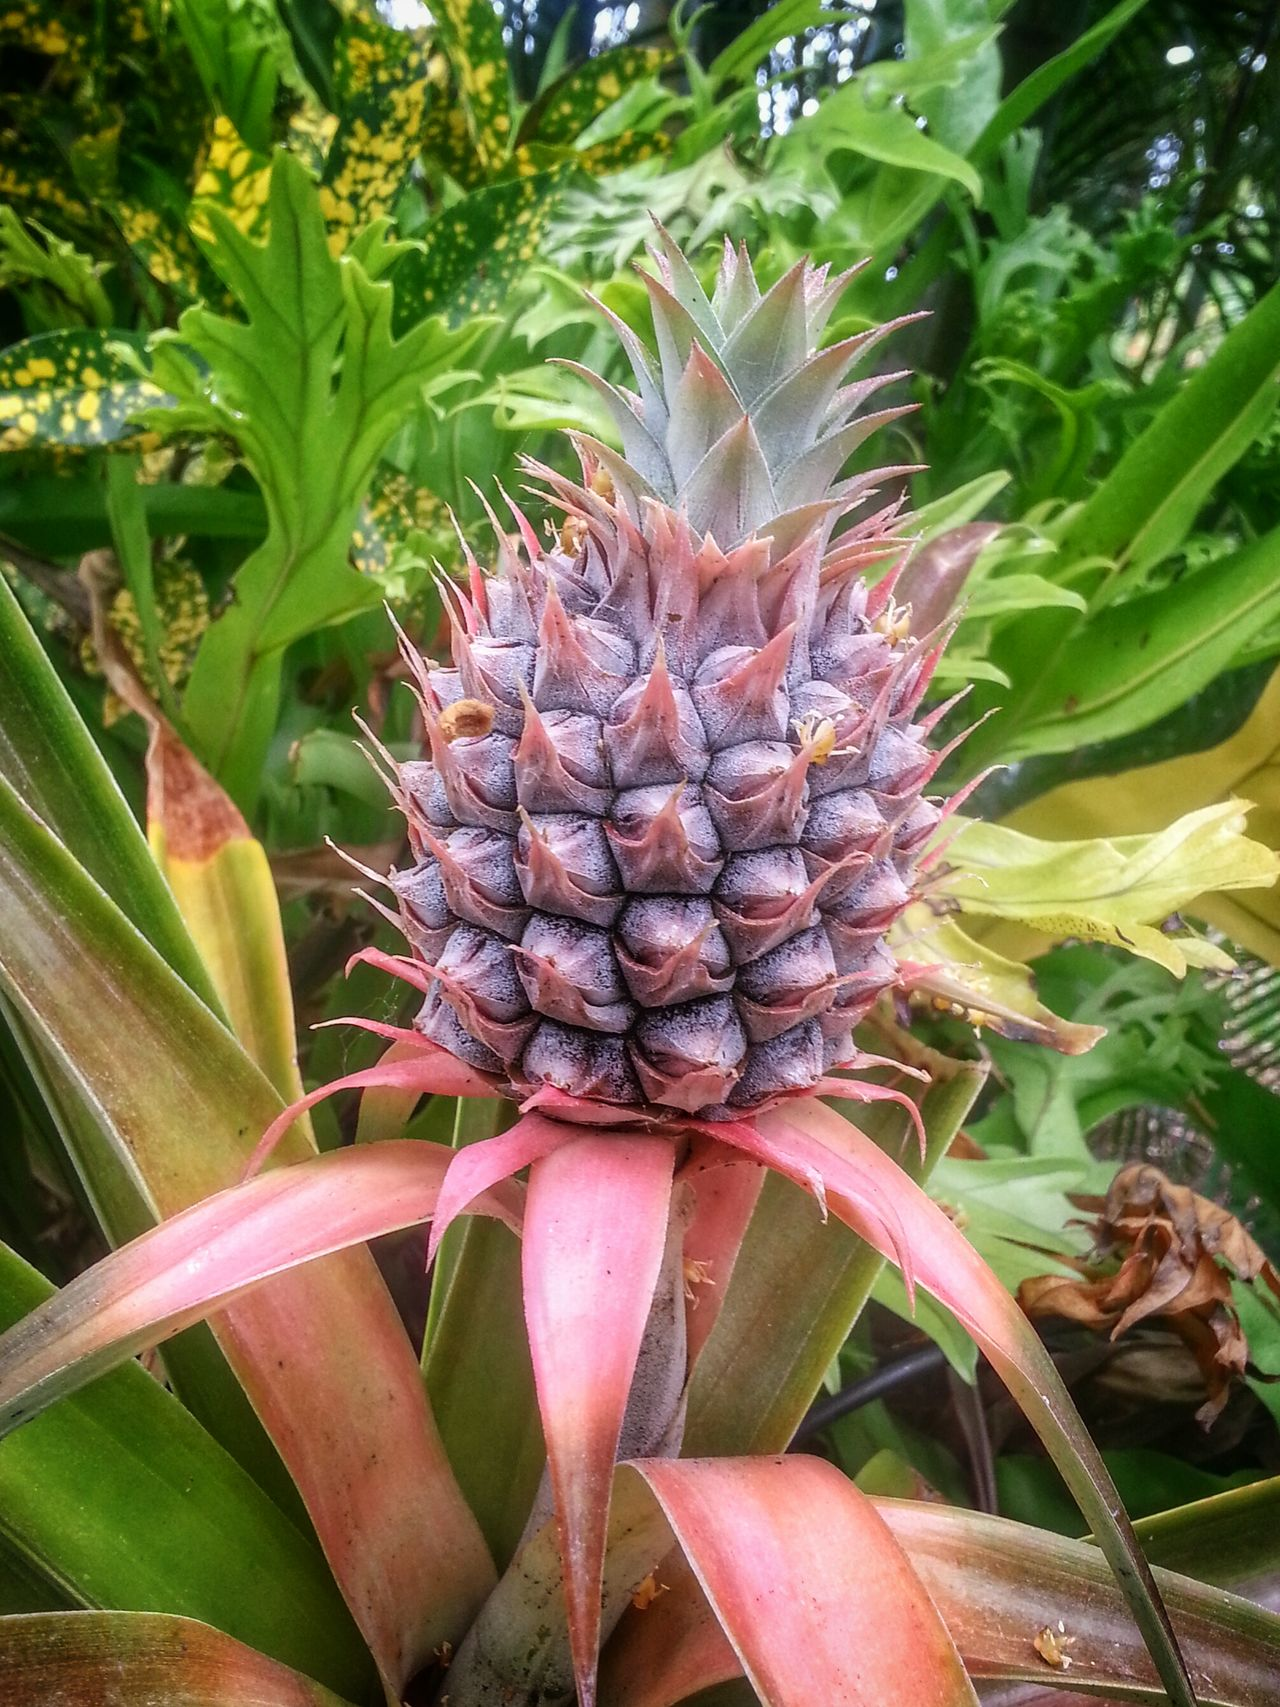 Nature_collection Nature Pineapple EyeEm Nature Lover